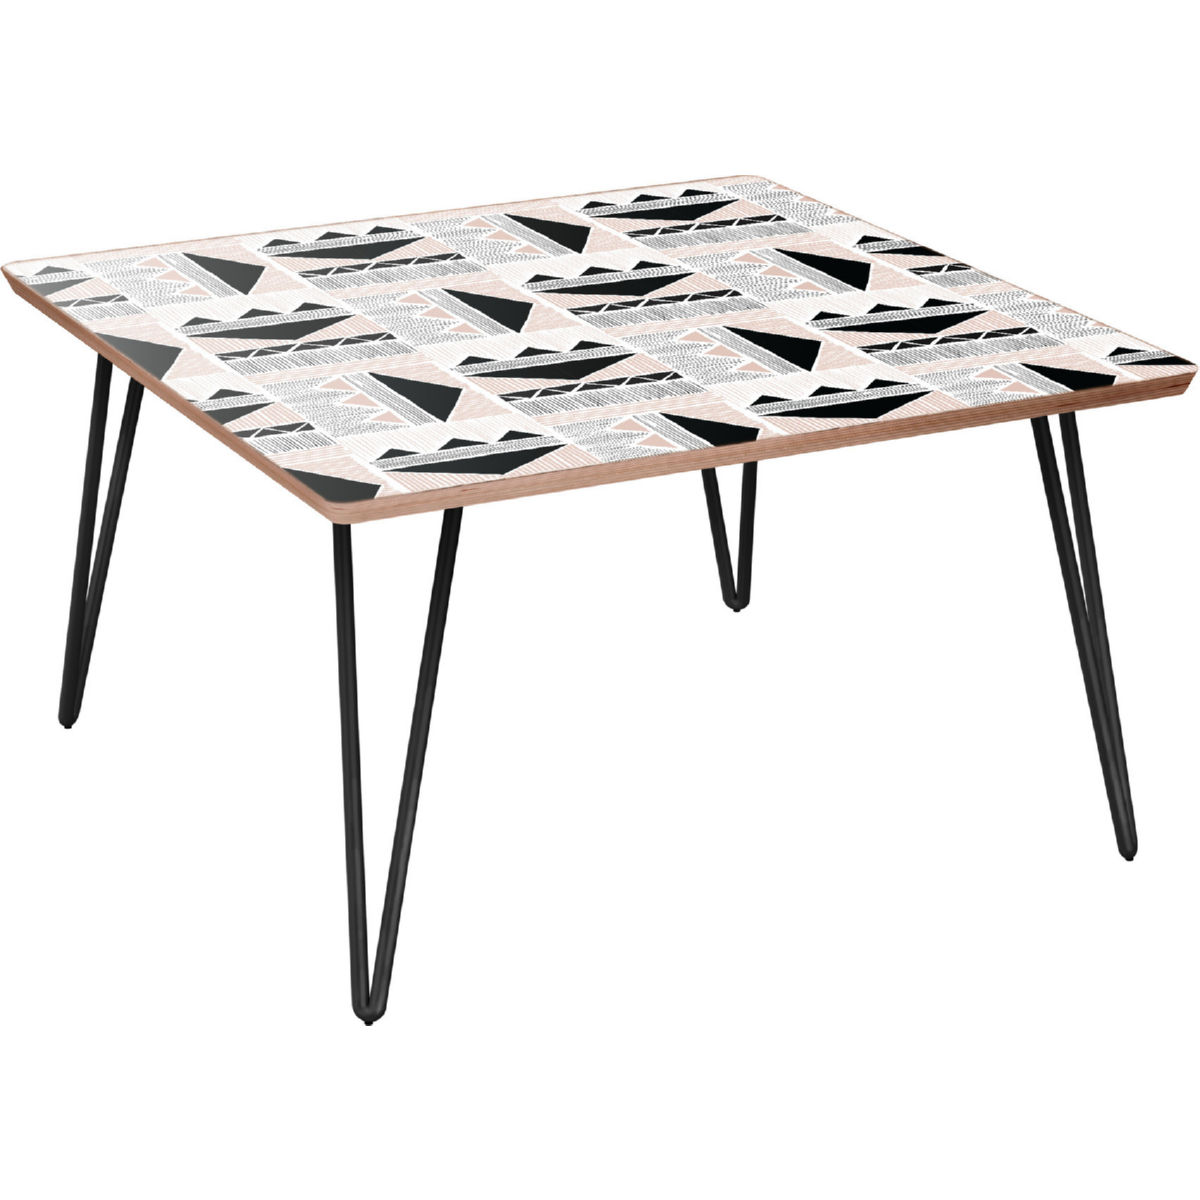 nyekoncept mason hairpin coffee table mudcloth print room essentials accent walnut black legs metal kitchen rustic small ideas drum throne pearl side with lamp attached vanity